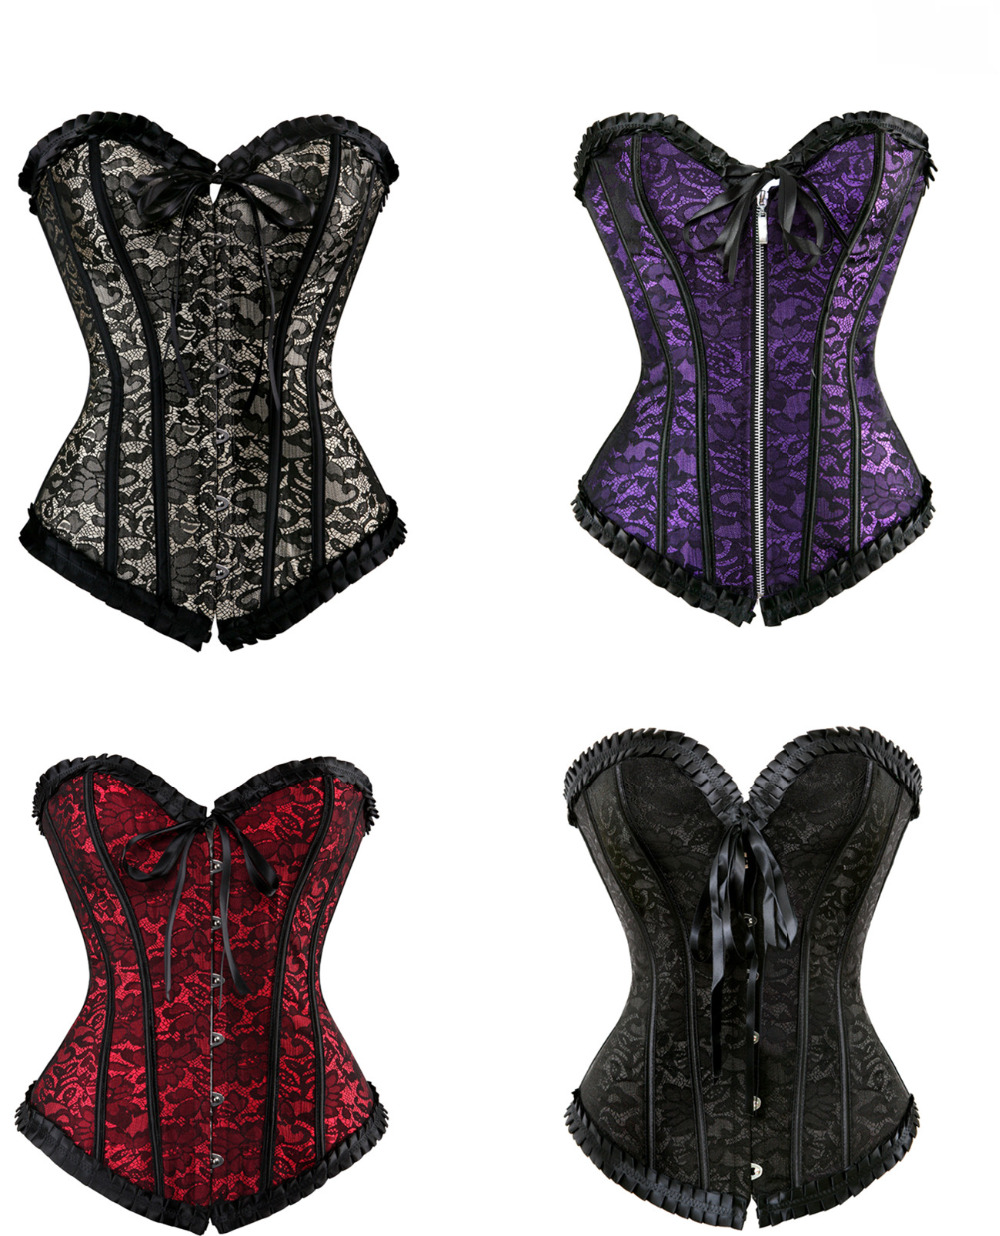 Sexy Satin Floral Gothic Lace Up Boned Overbust Corset Bustier Waist Trainer  Plus Size S-2XL With G-string